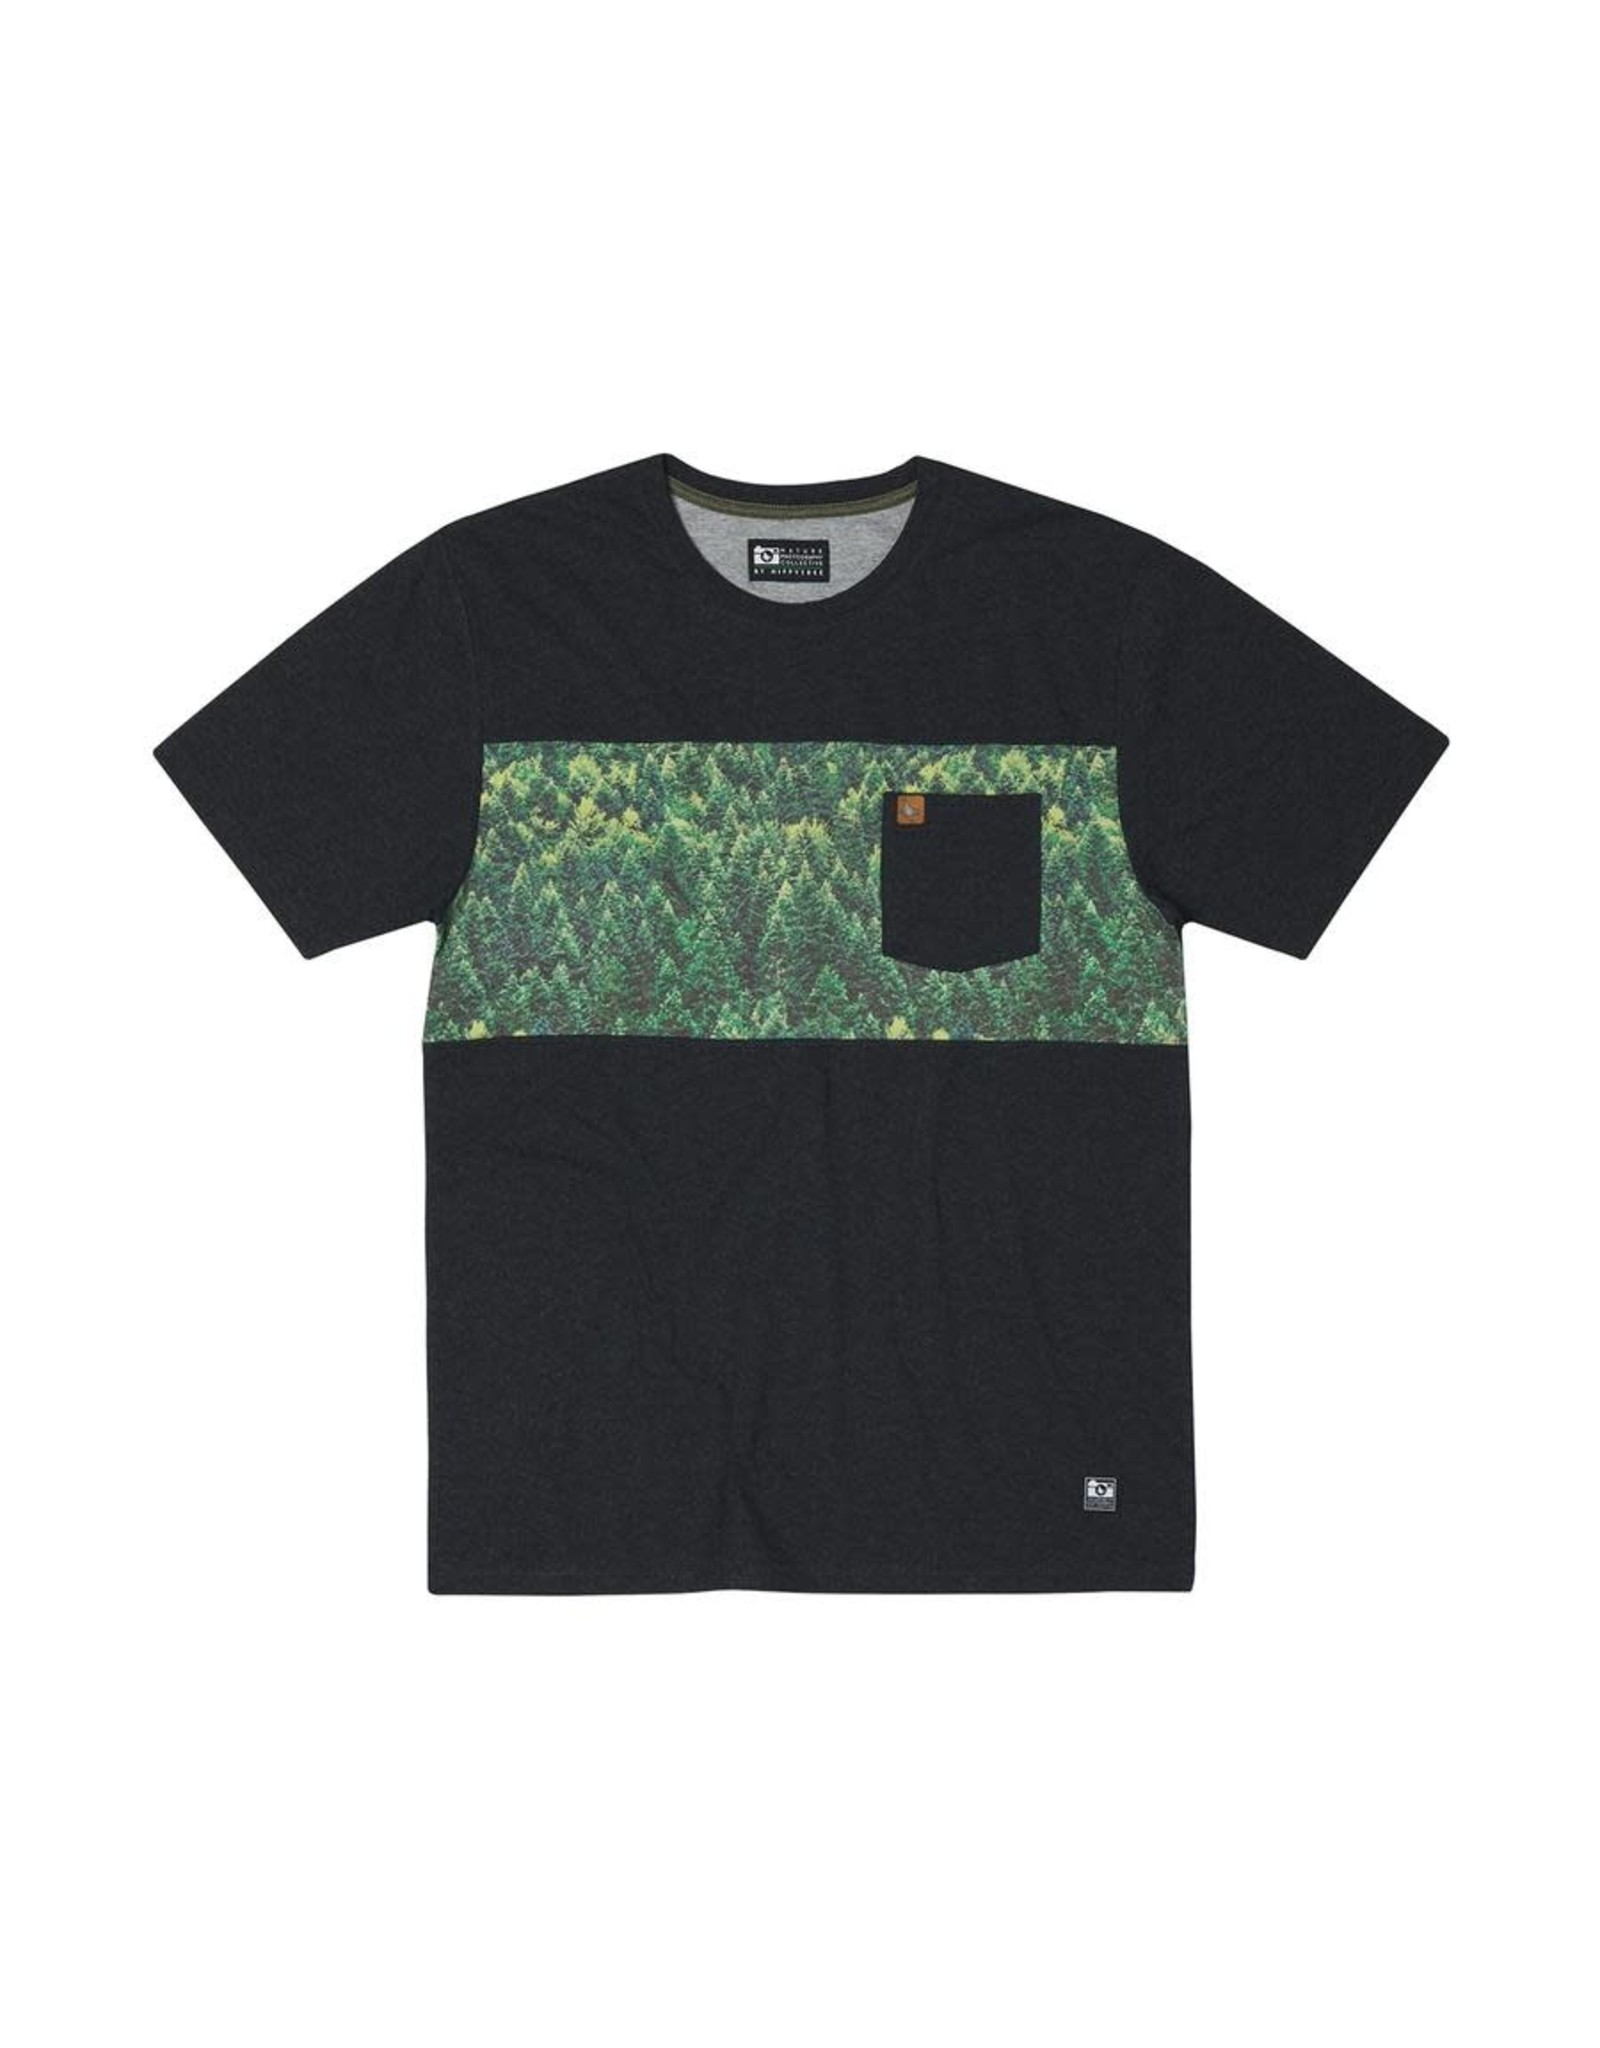 Hippy Tree HT Spruce T-Shirt: Heather Black